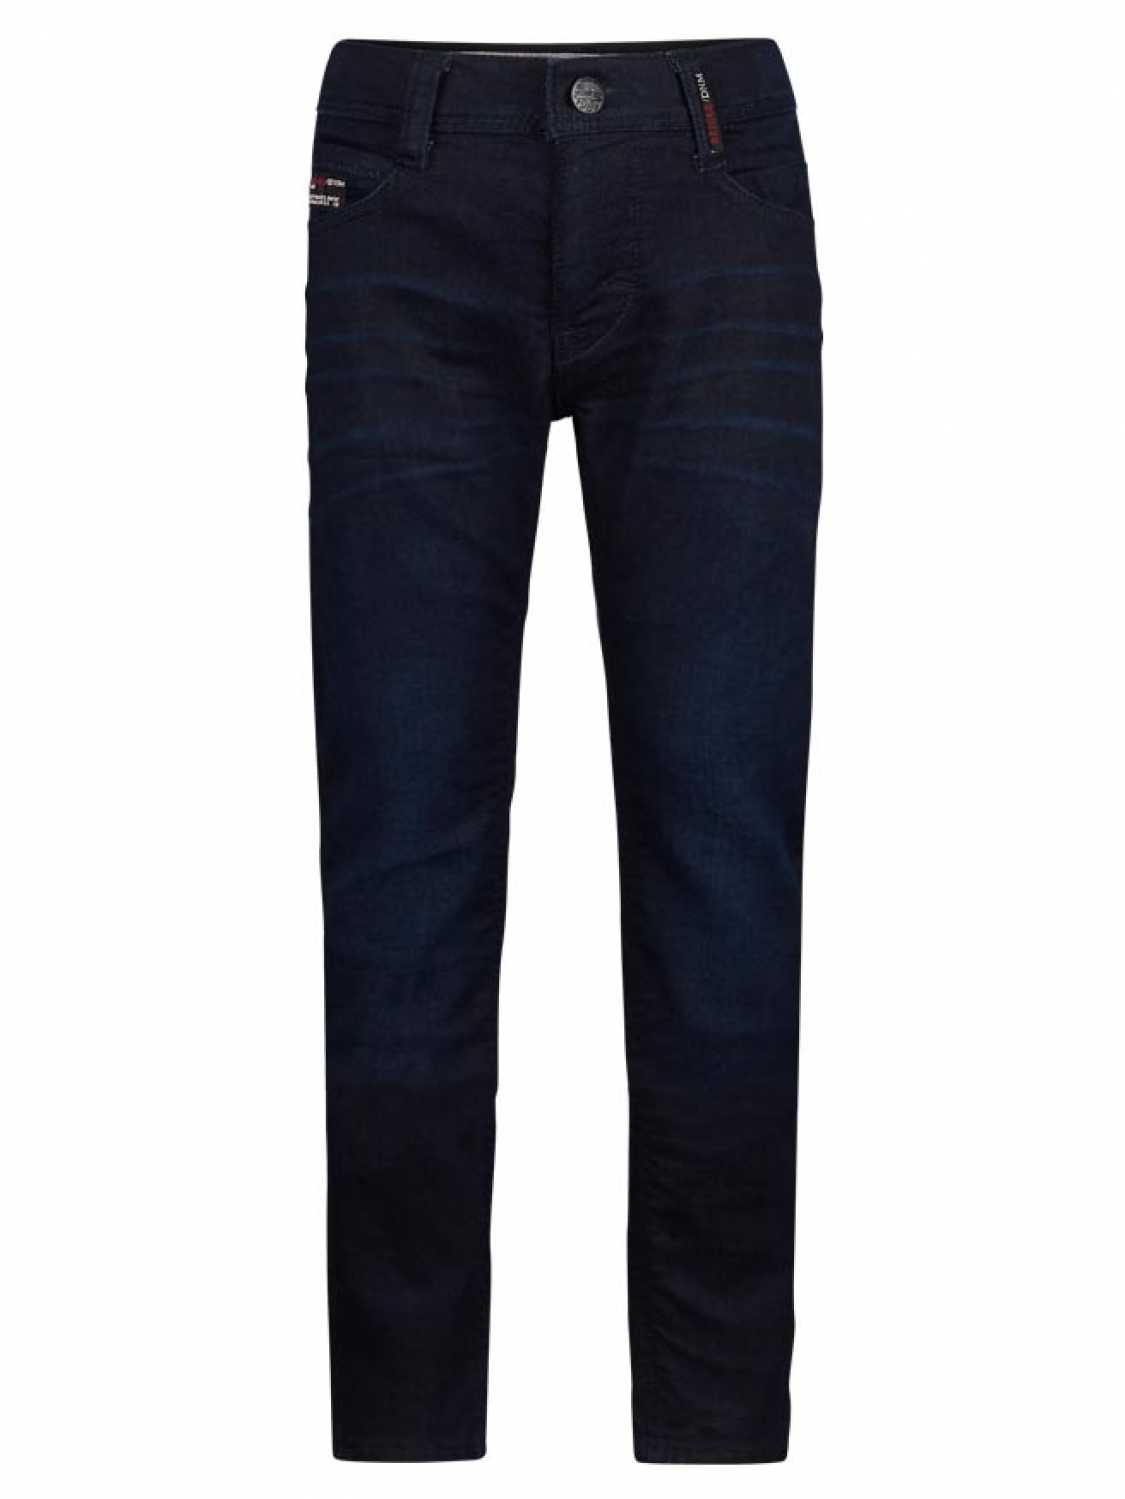 Retour Denim Lange broek - jongens - Denim -